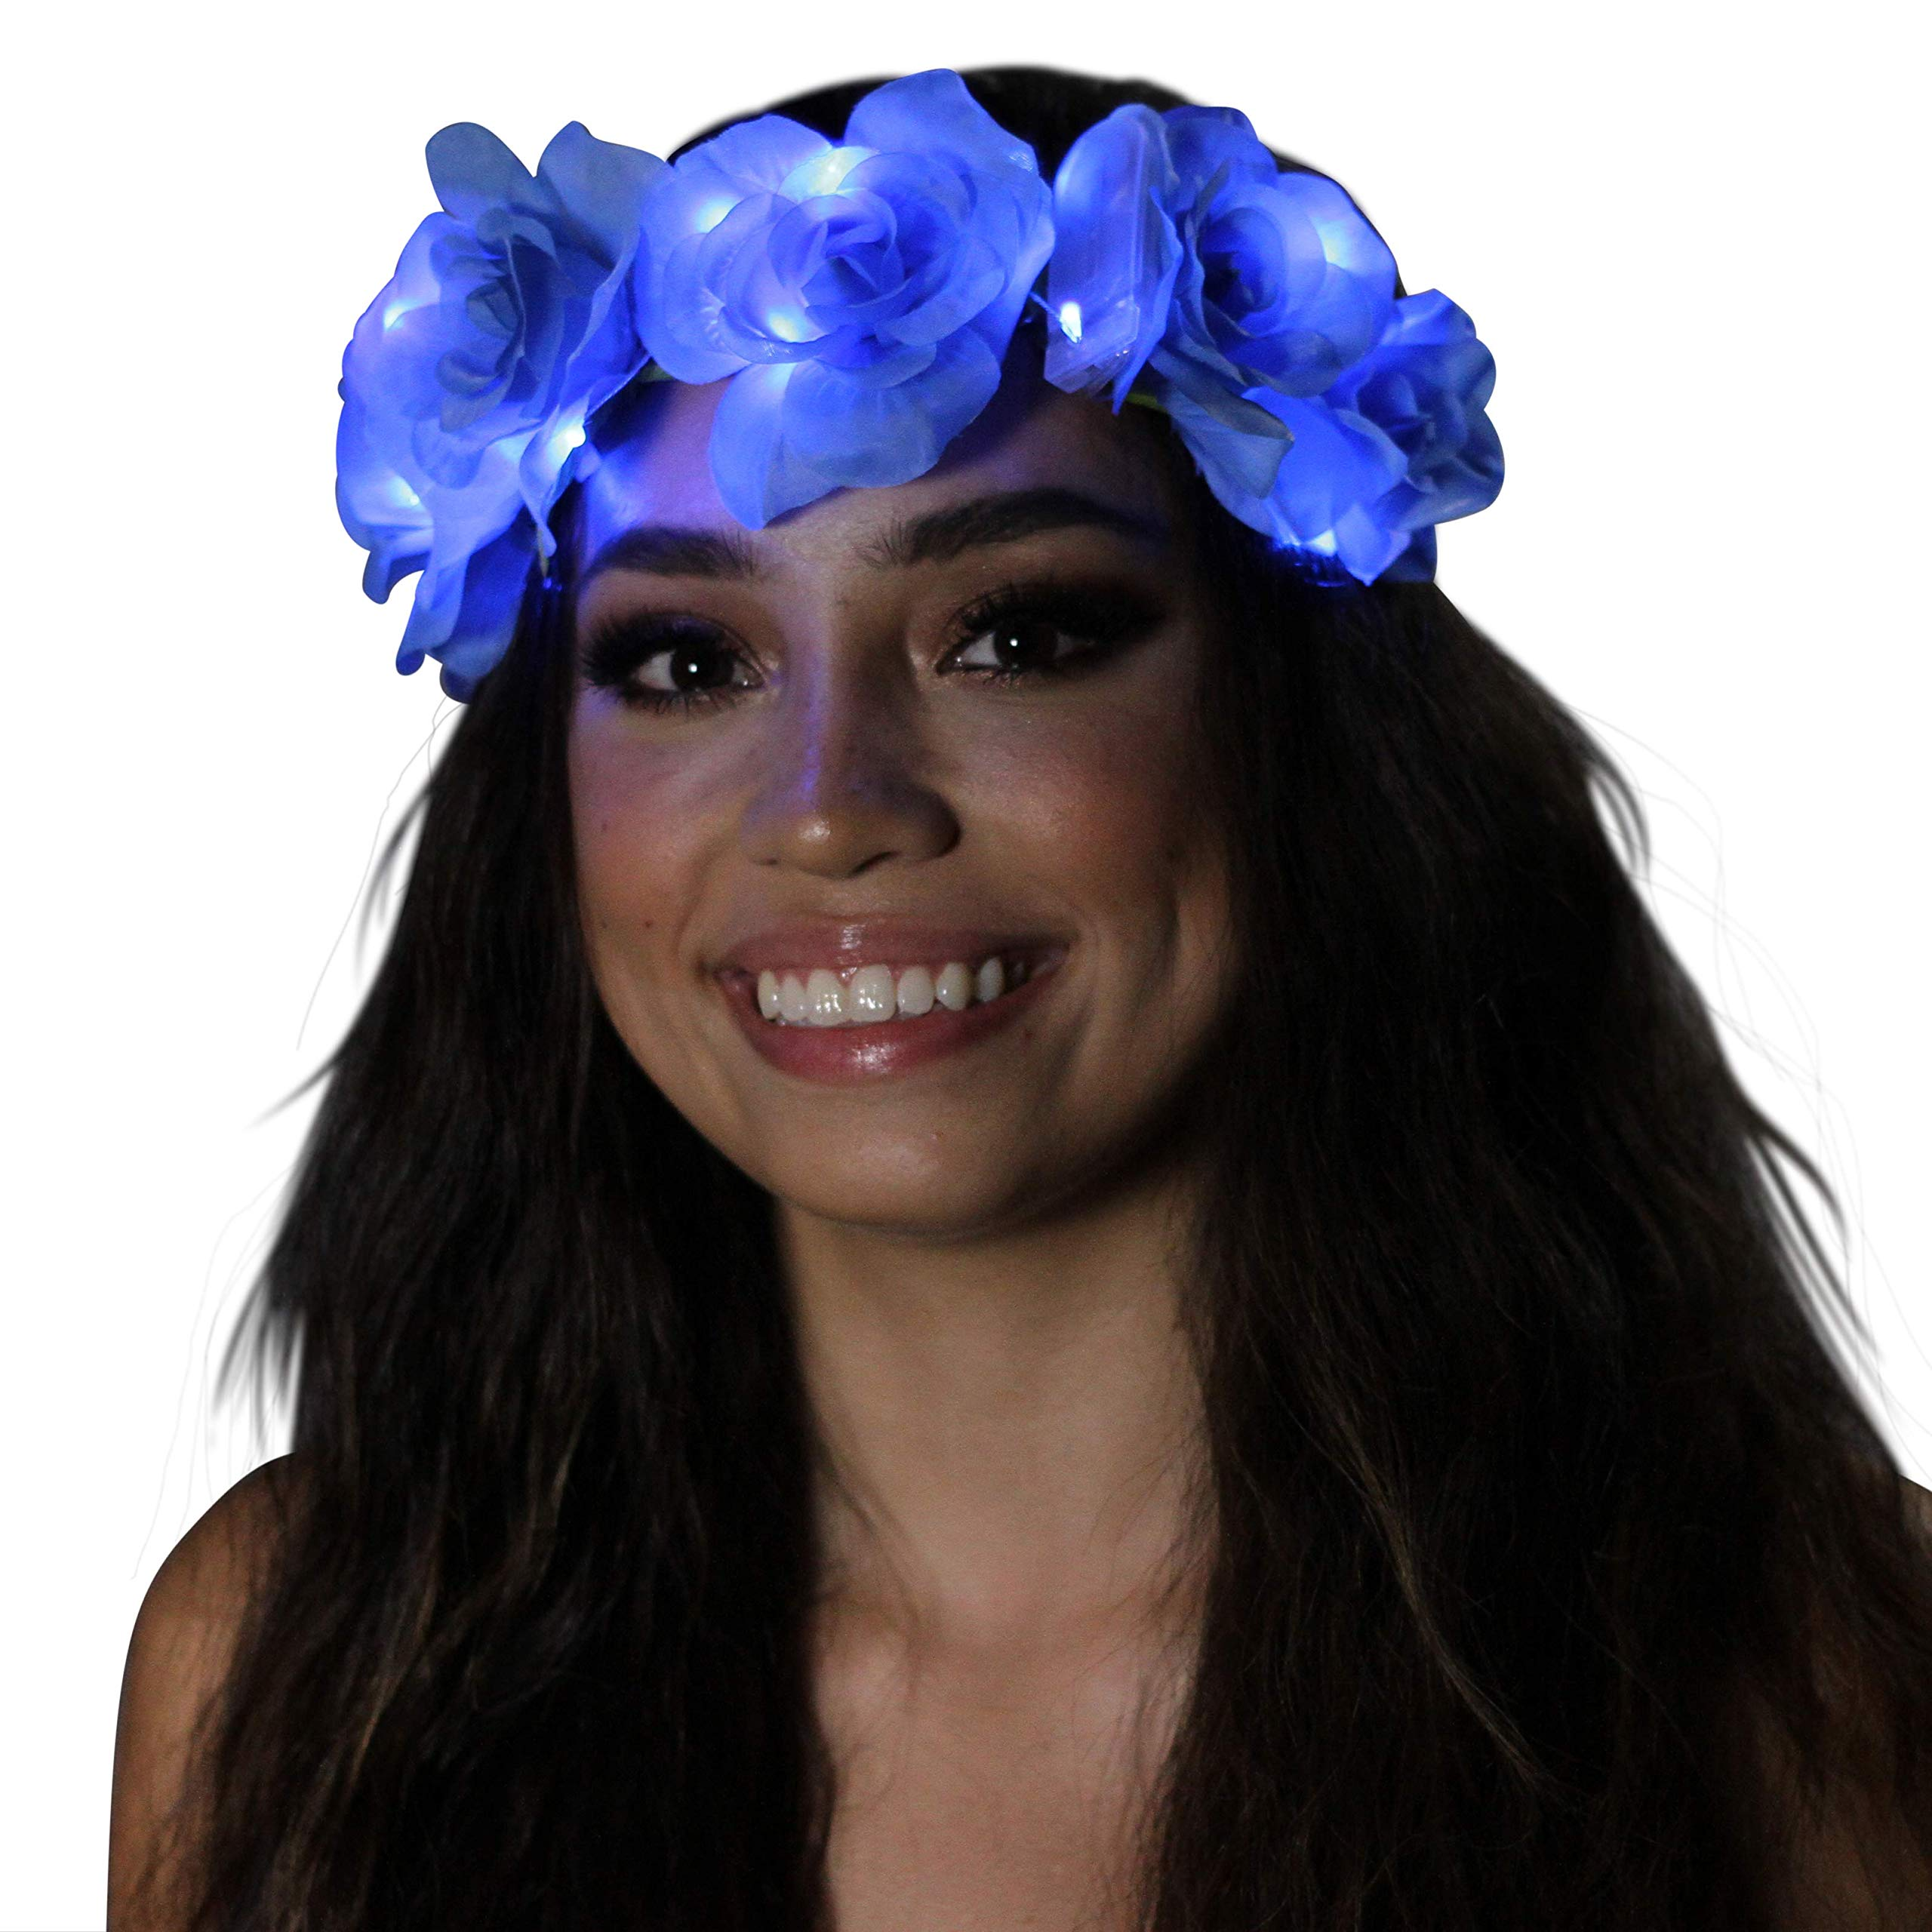 Light Up Flower Crown (Blue Rose)